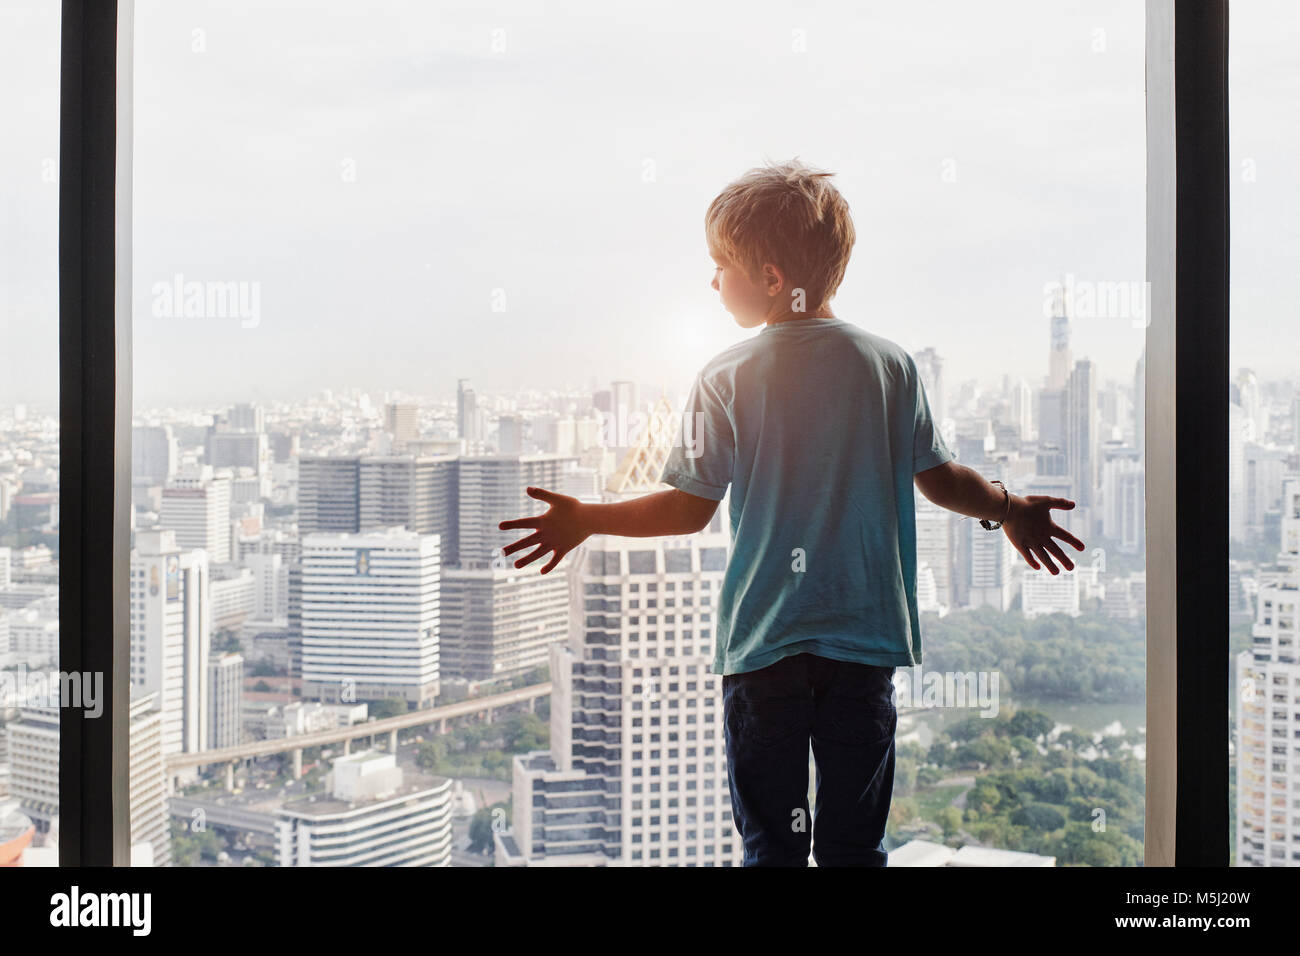 Thailand, Bangkok, boy looking through window at cityscape - Stock Image